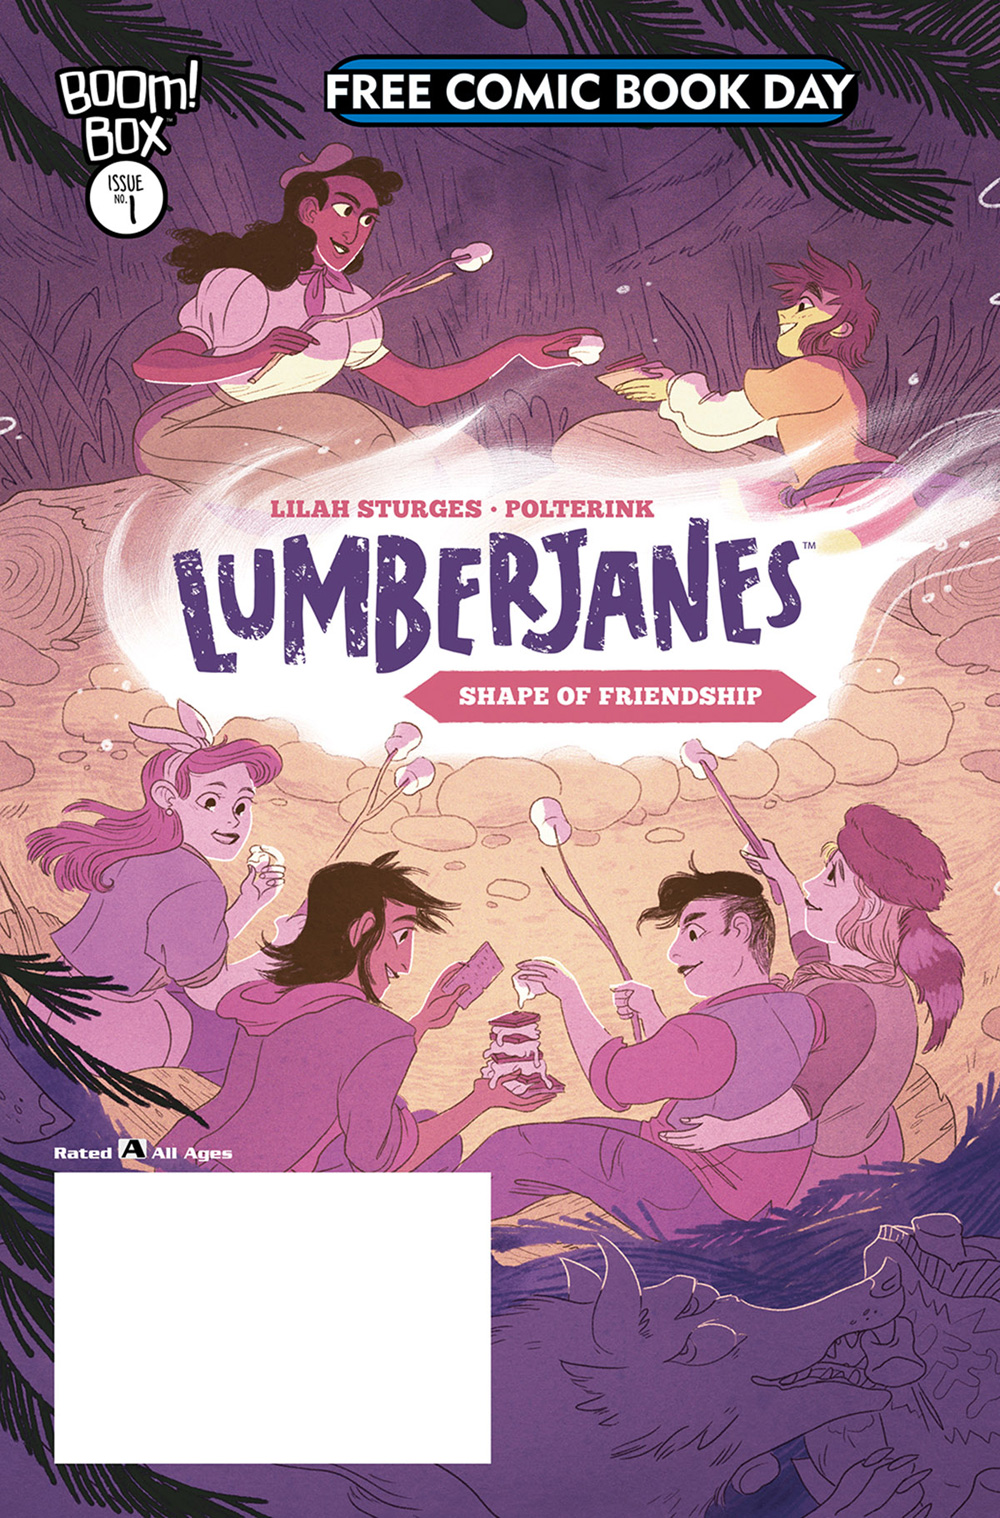 Lumberjane's The Shape of Friendship